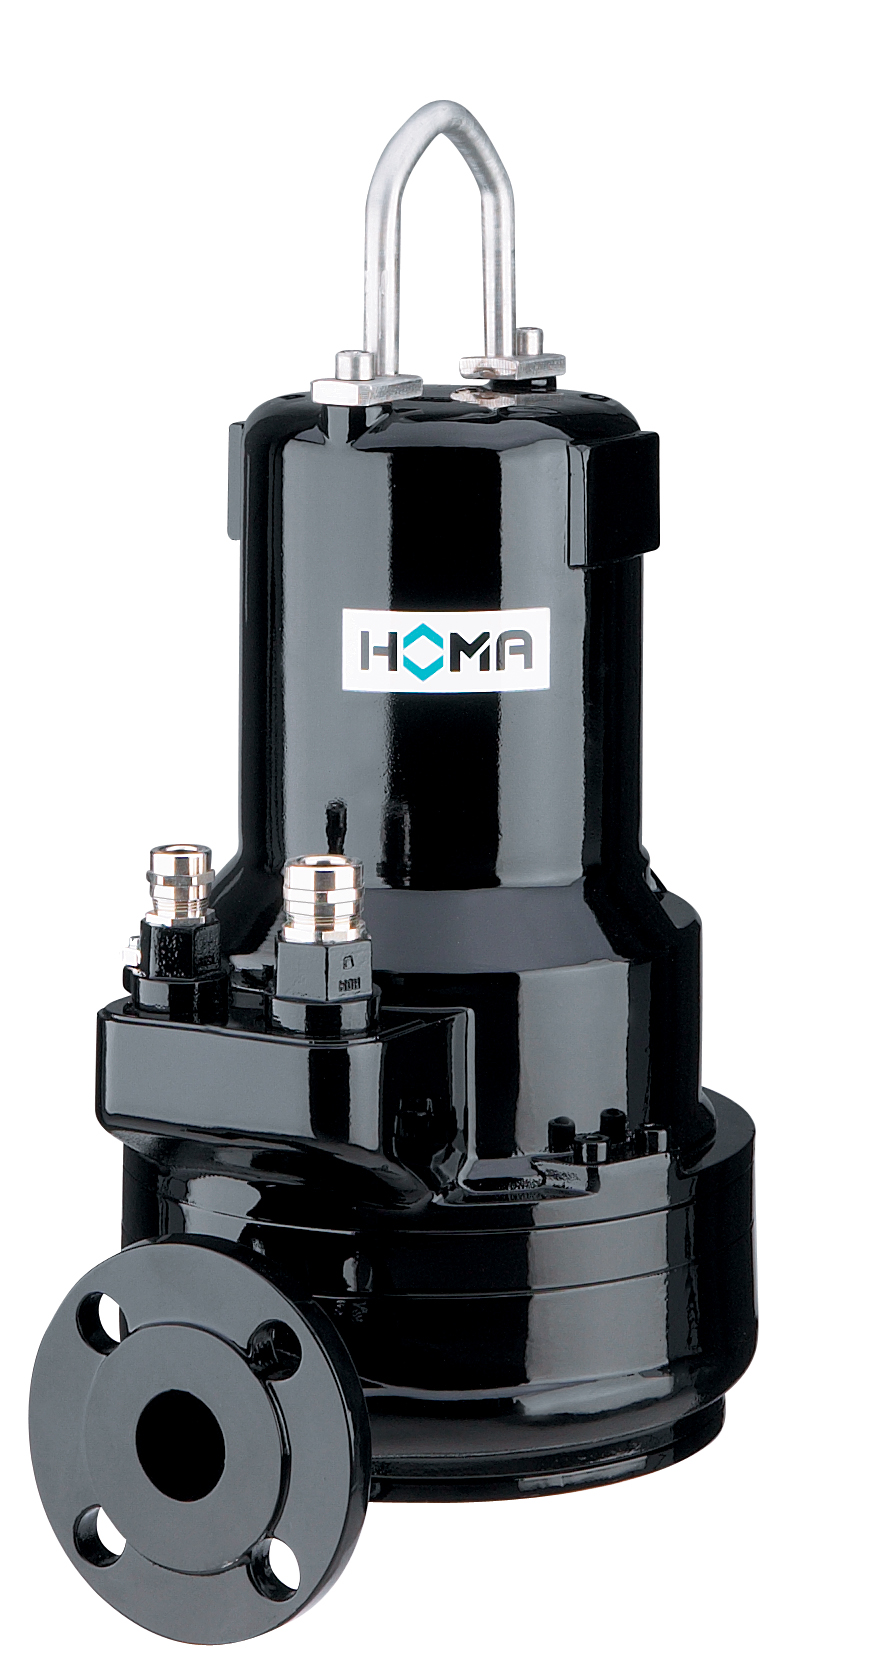 Innovative submersible pumps with cutter system